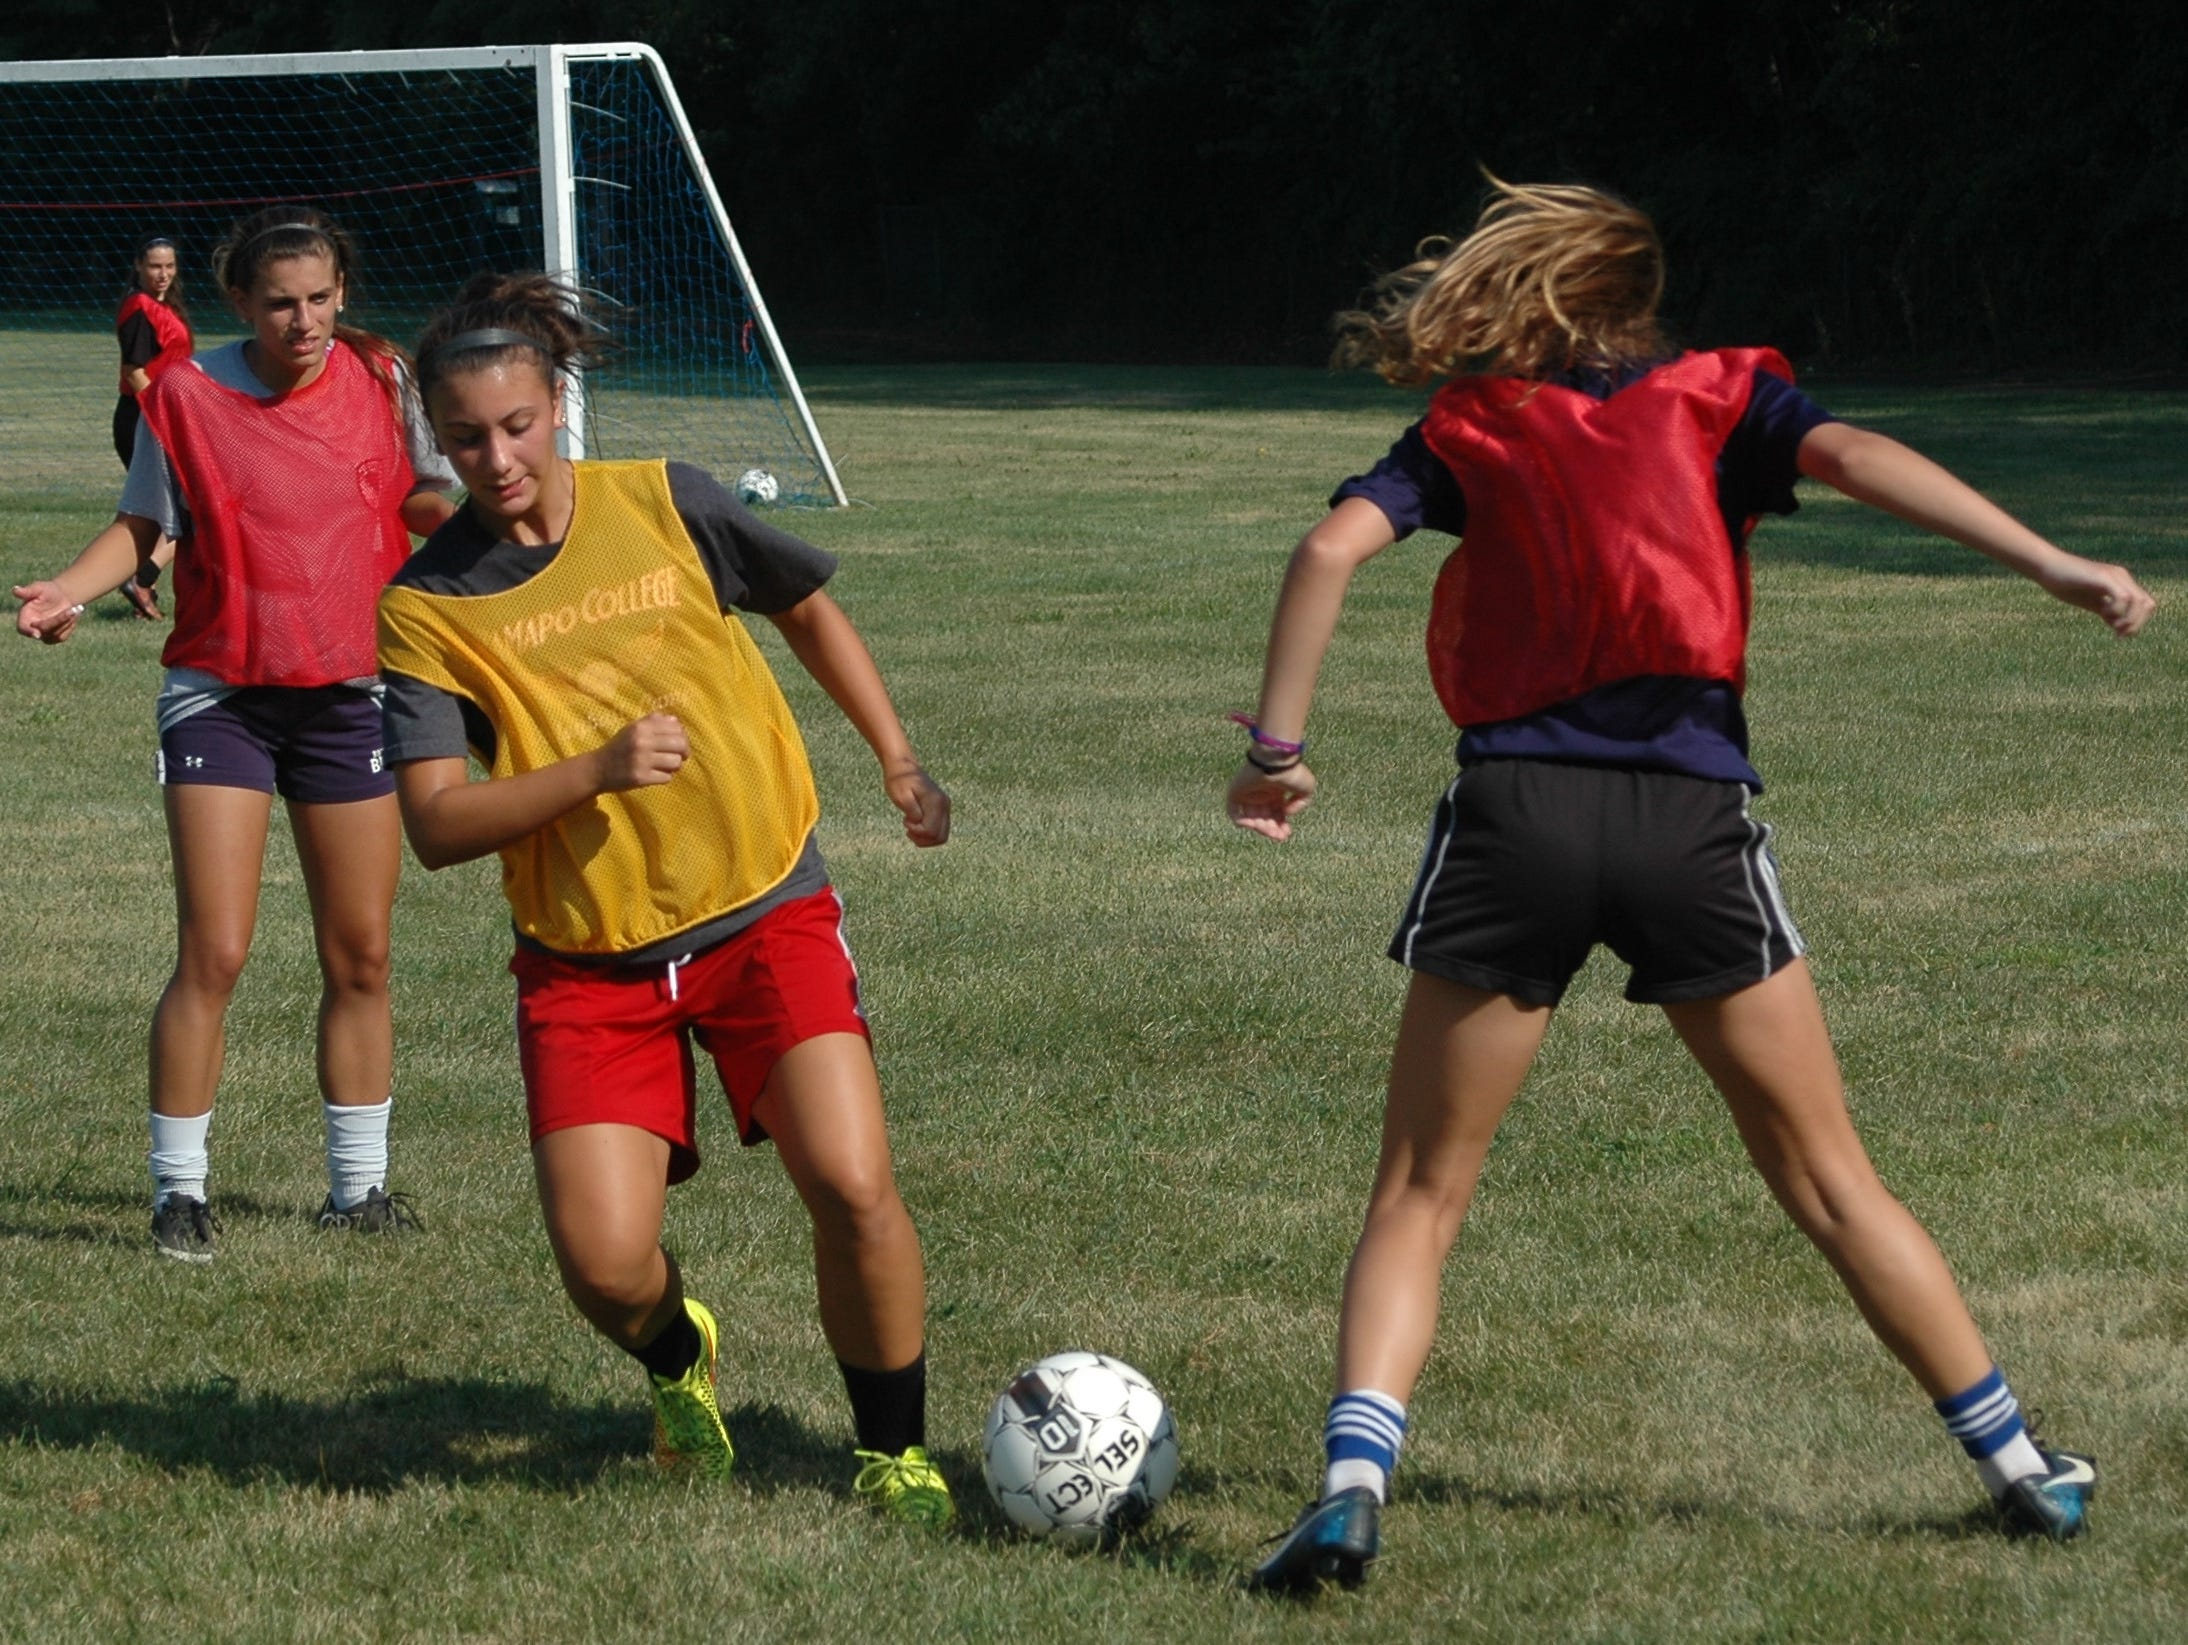 Members of Clarkstown South's girls soccer team scrimmage during a pre-season practice session at Clarkstown South High School on August 25, 2015.